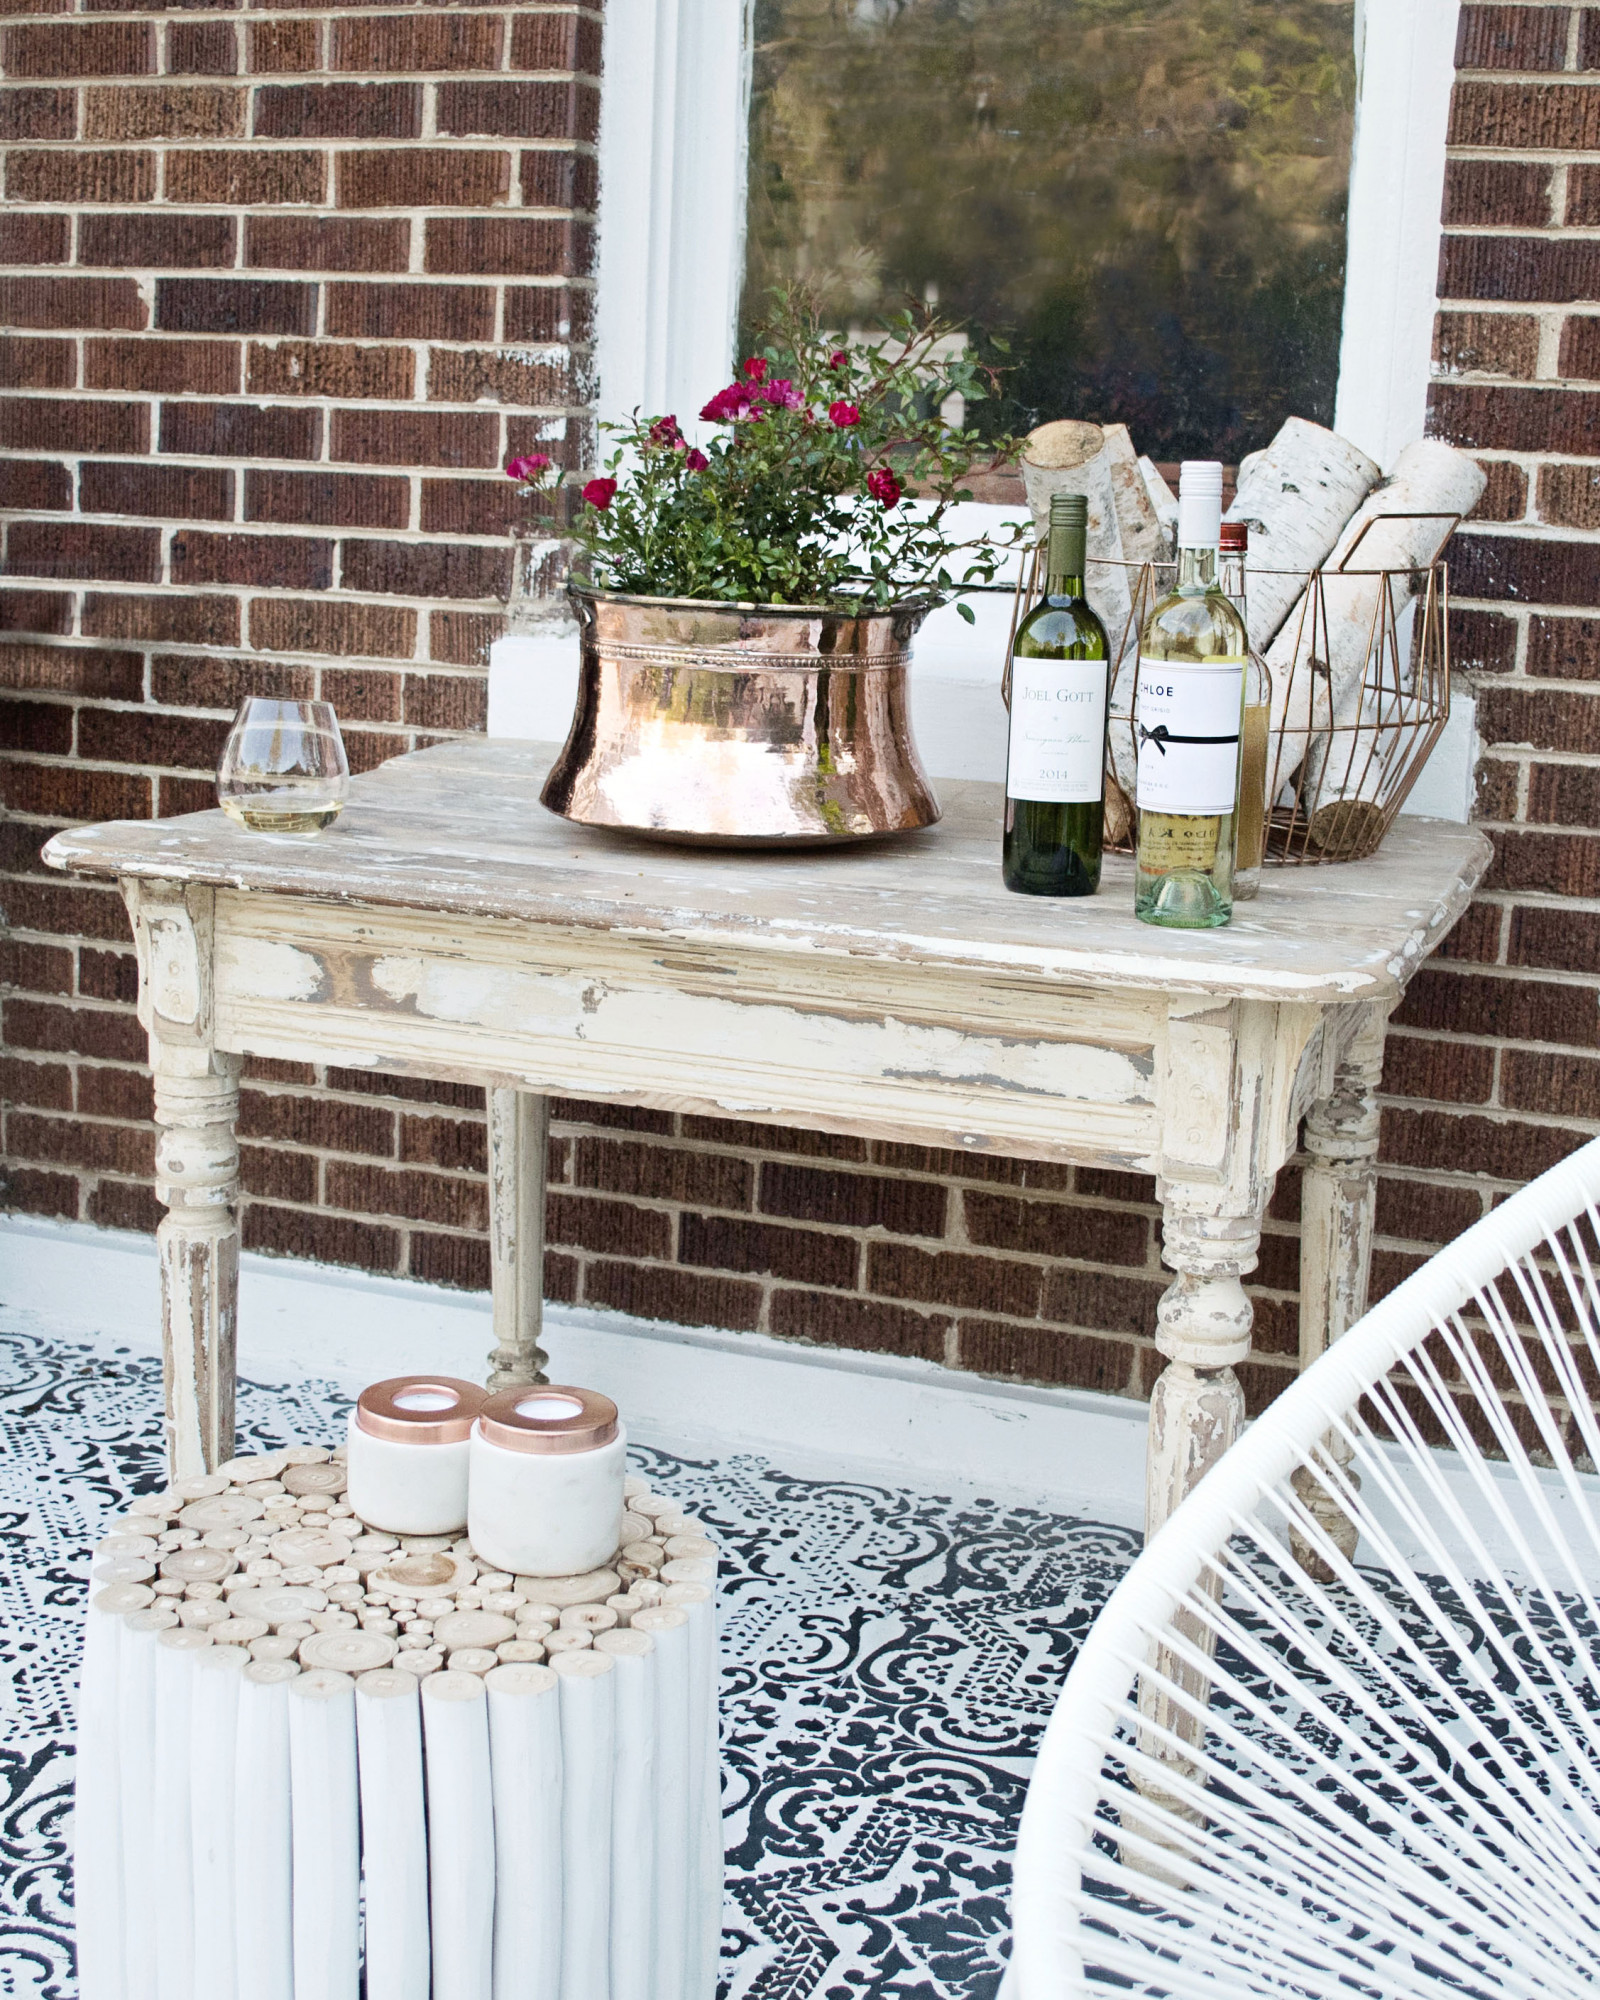 kindred vintage patio makeover